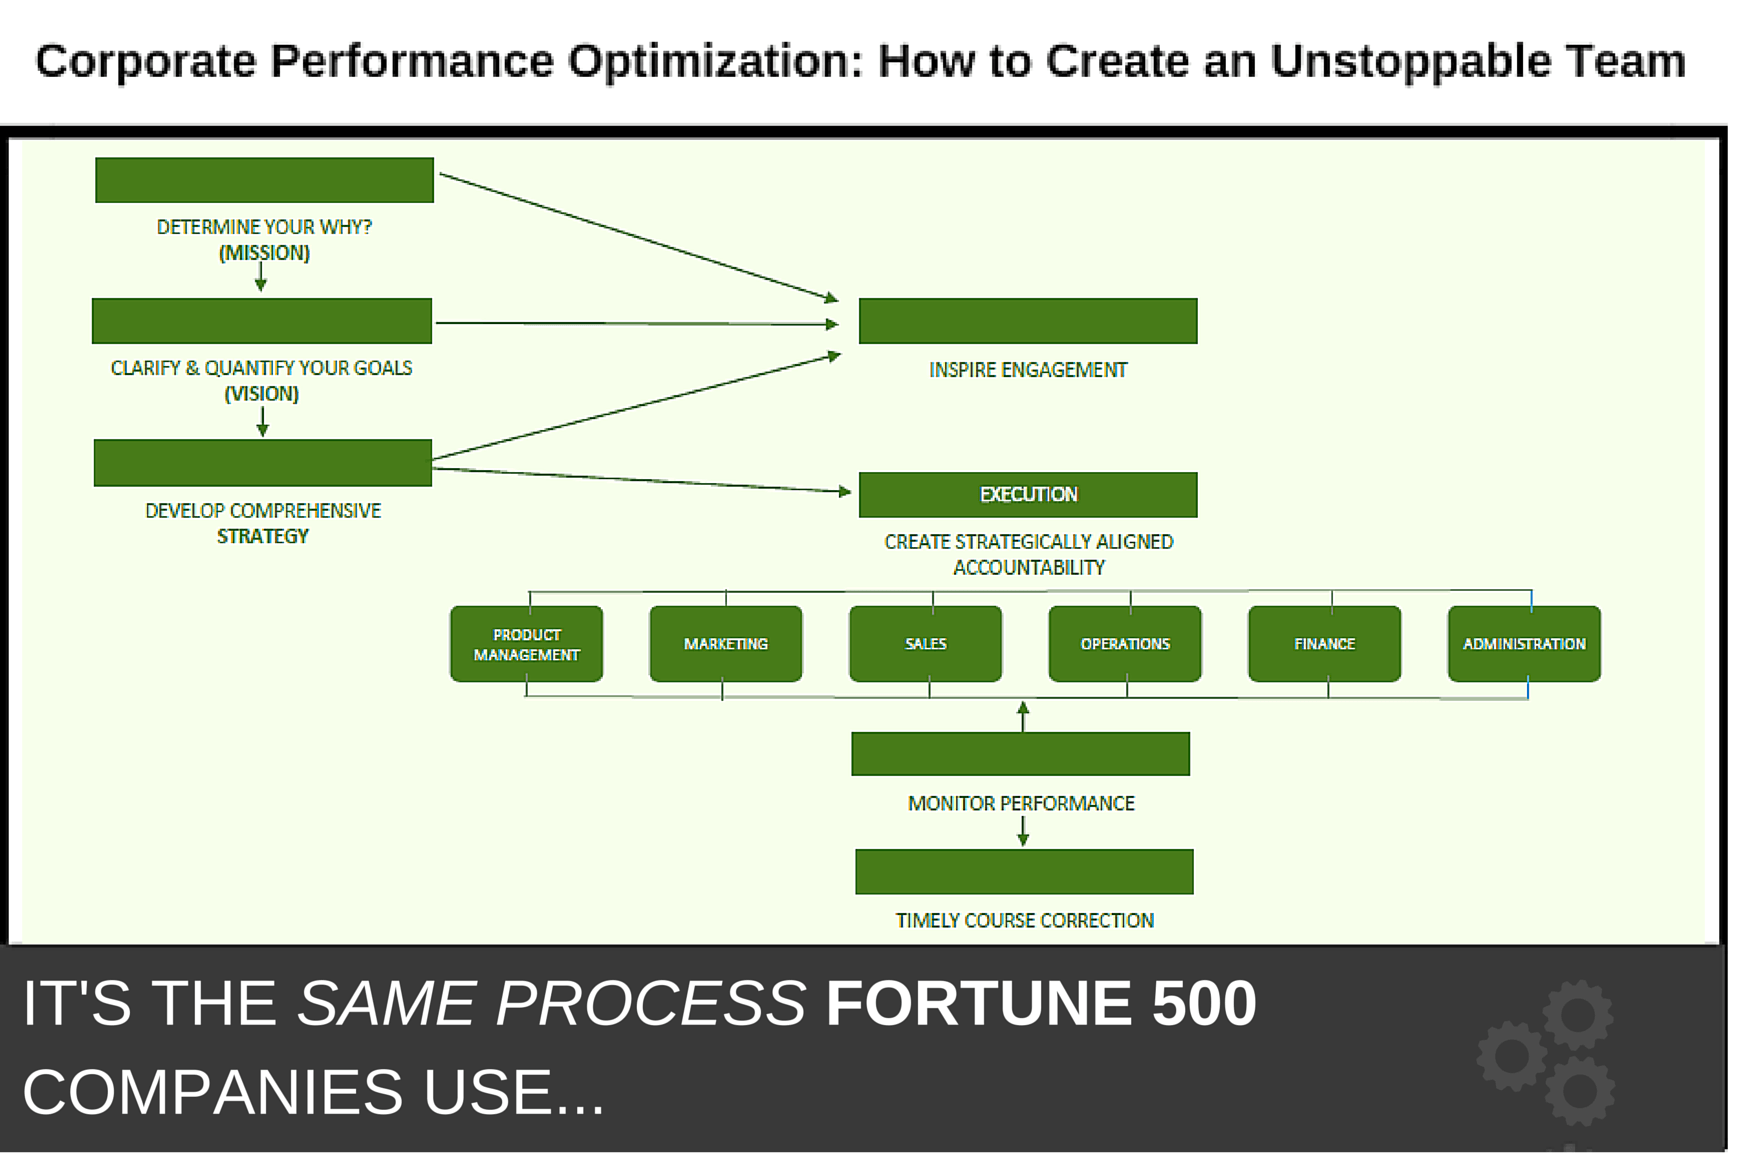 corporate-performance-optimization-how-to-create-an-unstoppable-team